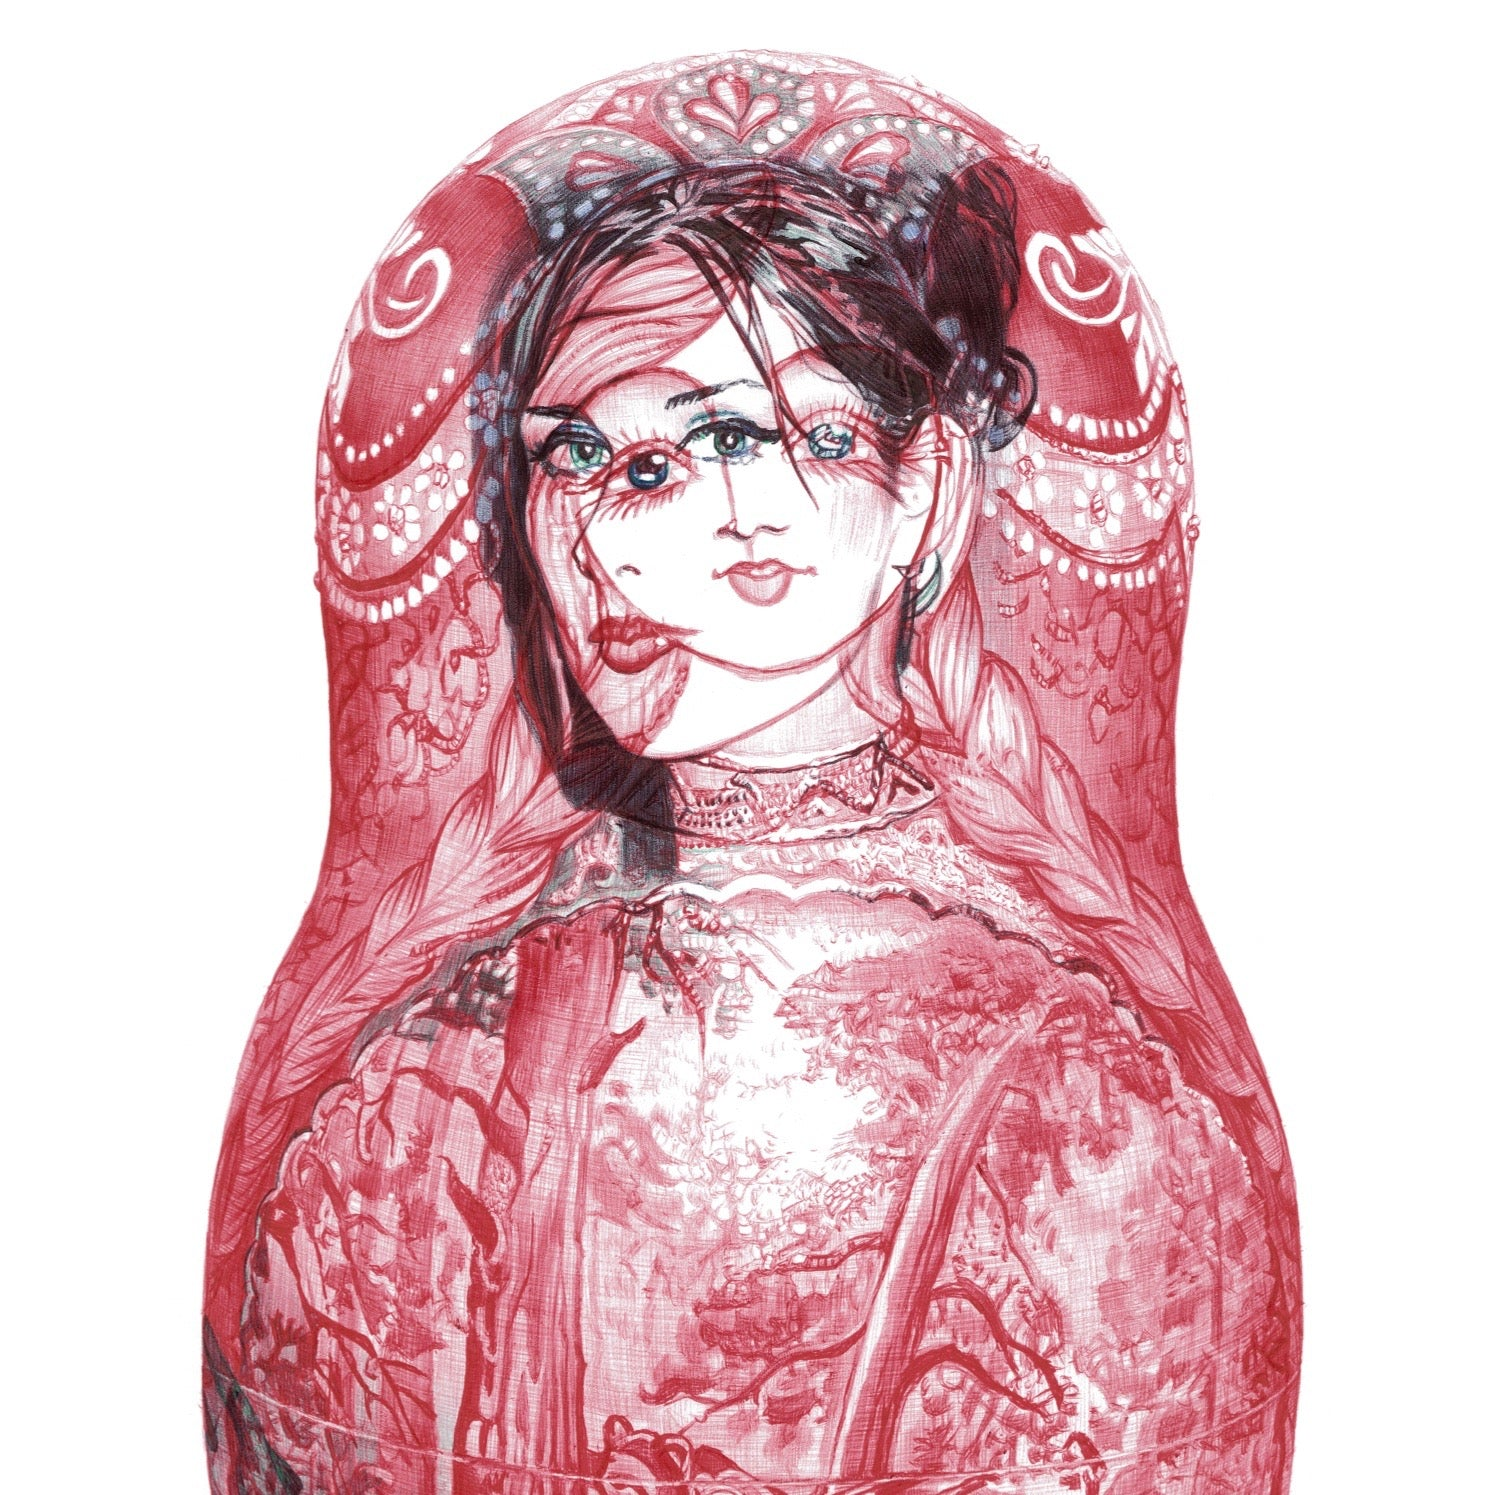 Russian Doll Limited Edition Print